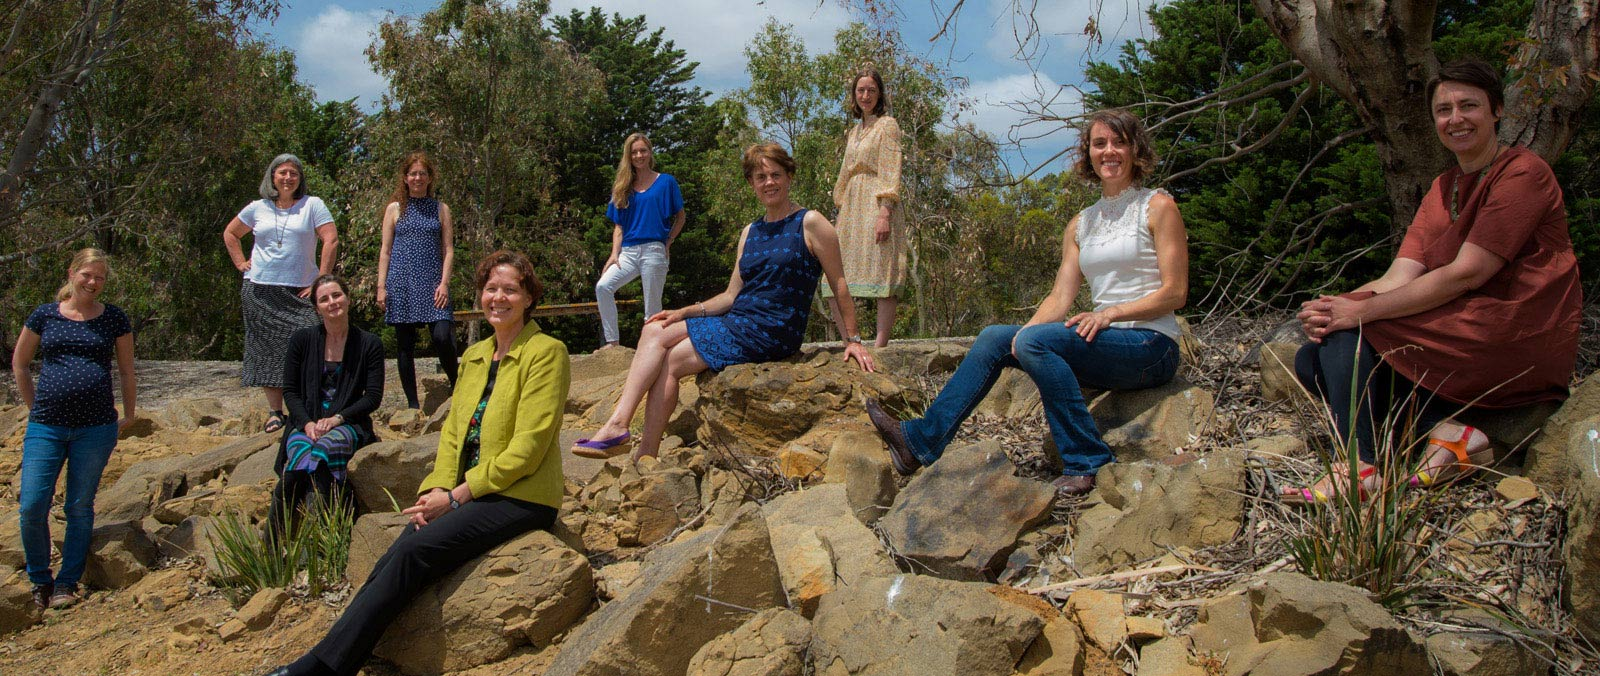 women ecologists provide strength in numbers deakin the number of early and mid career women researchers in deakin s centre for integrative ecology cie has reached a critical mass